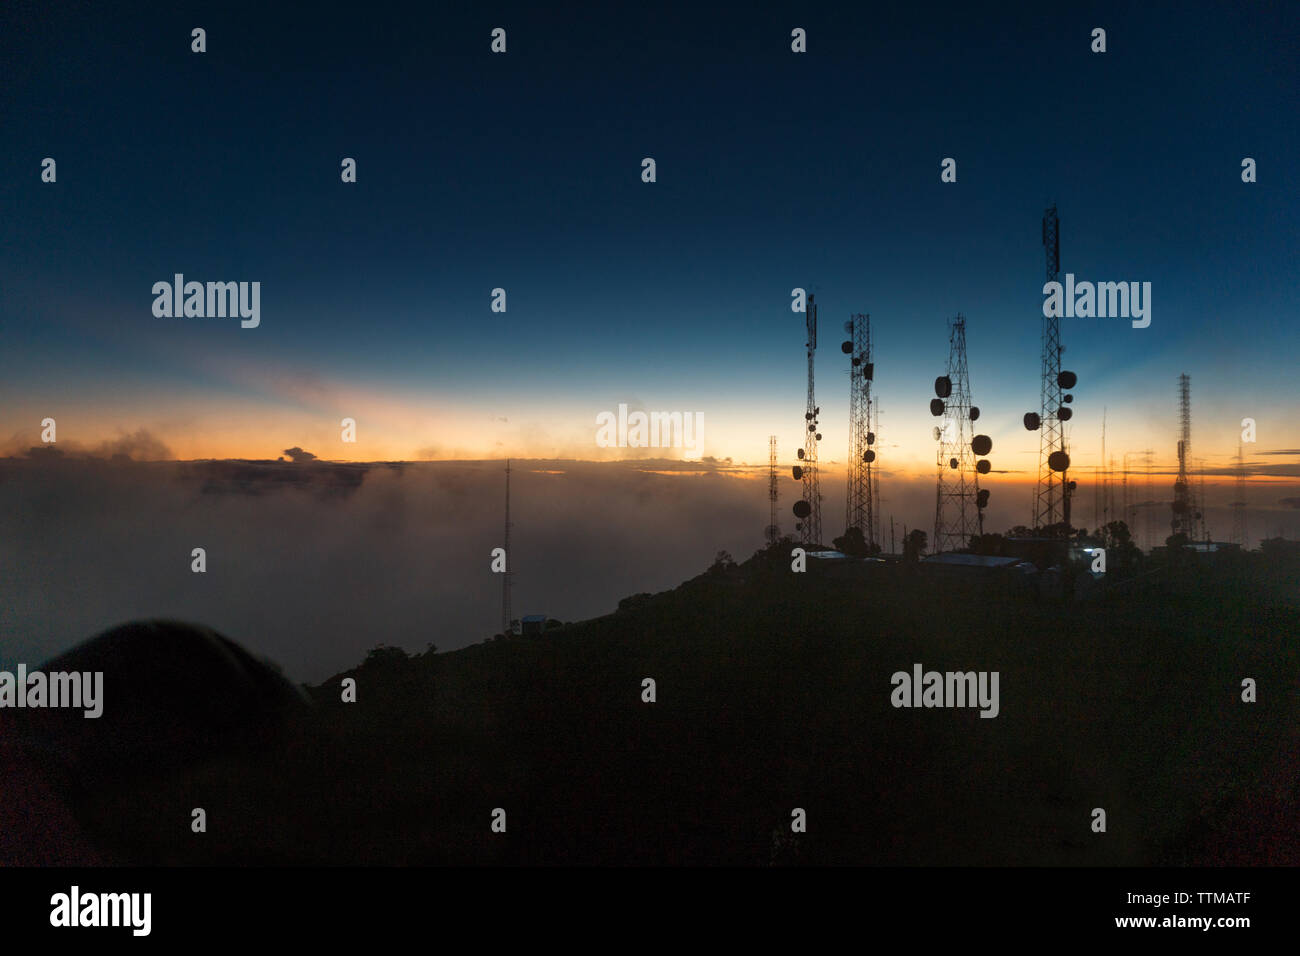 Silhouette of Telcom towers at Volcan Baru during sunset Stock Photo